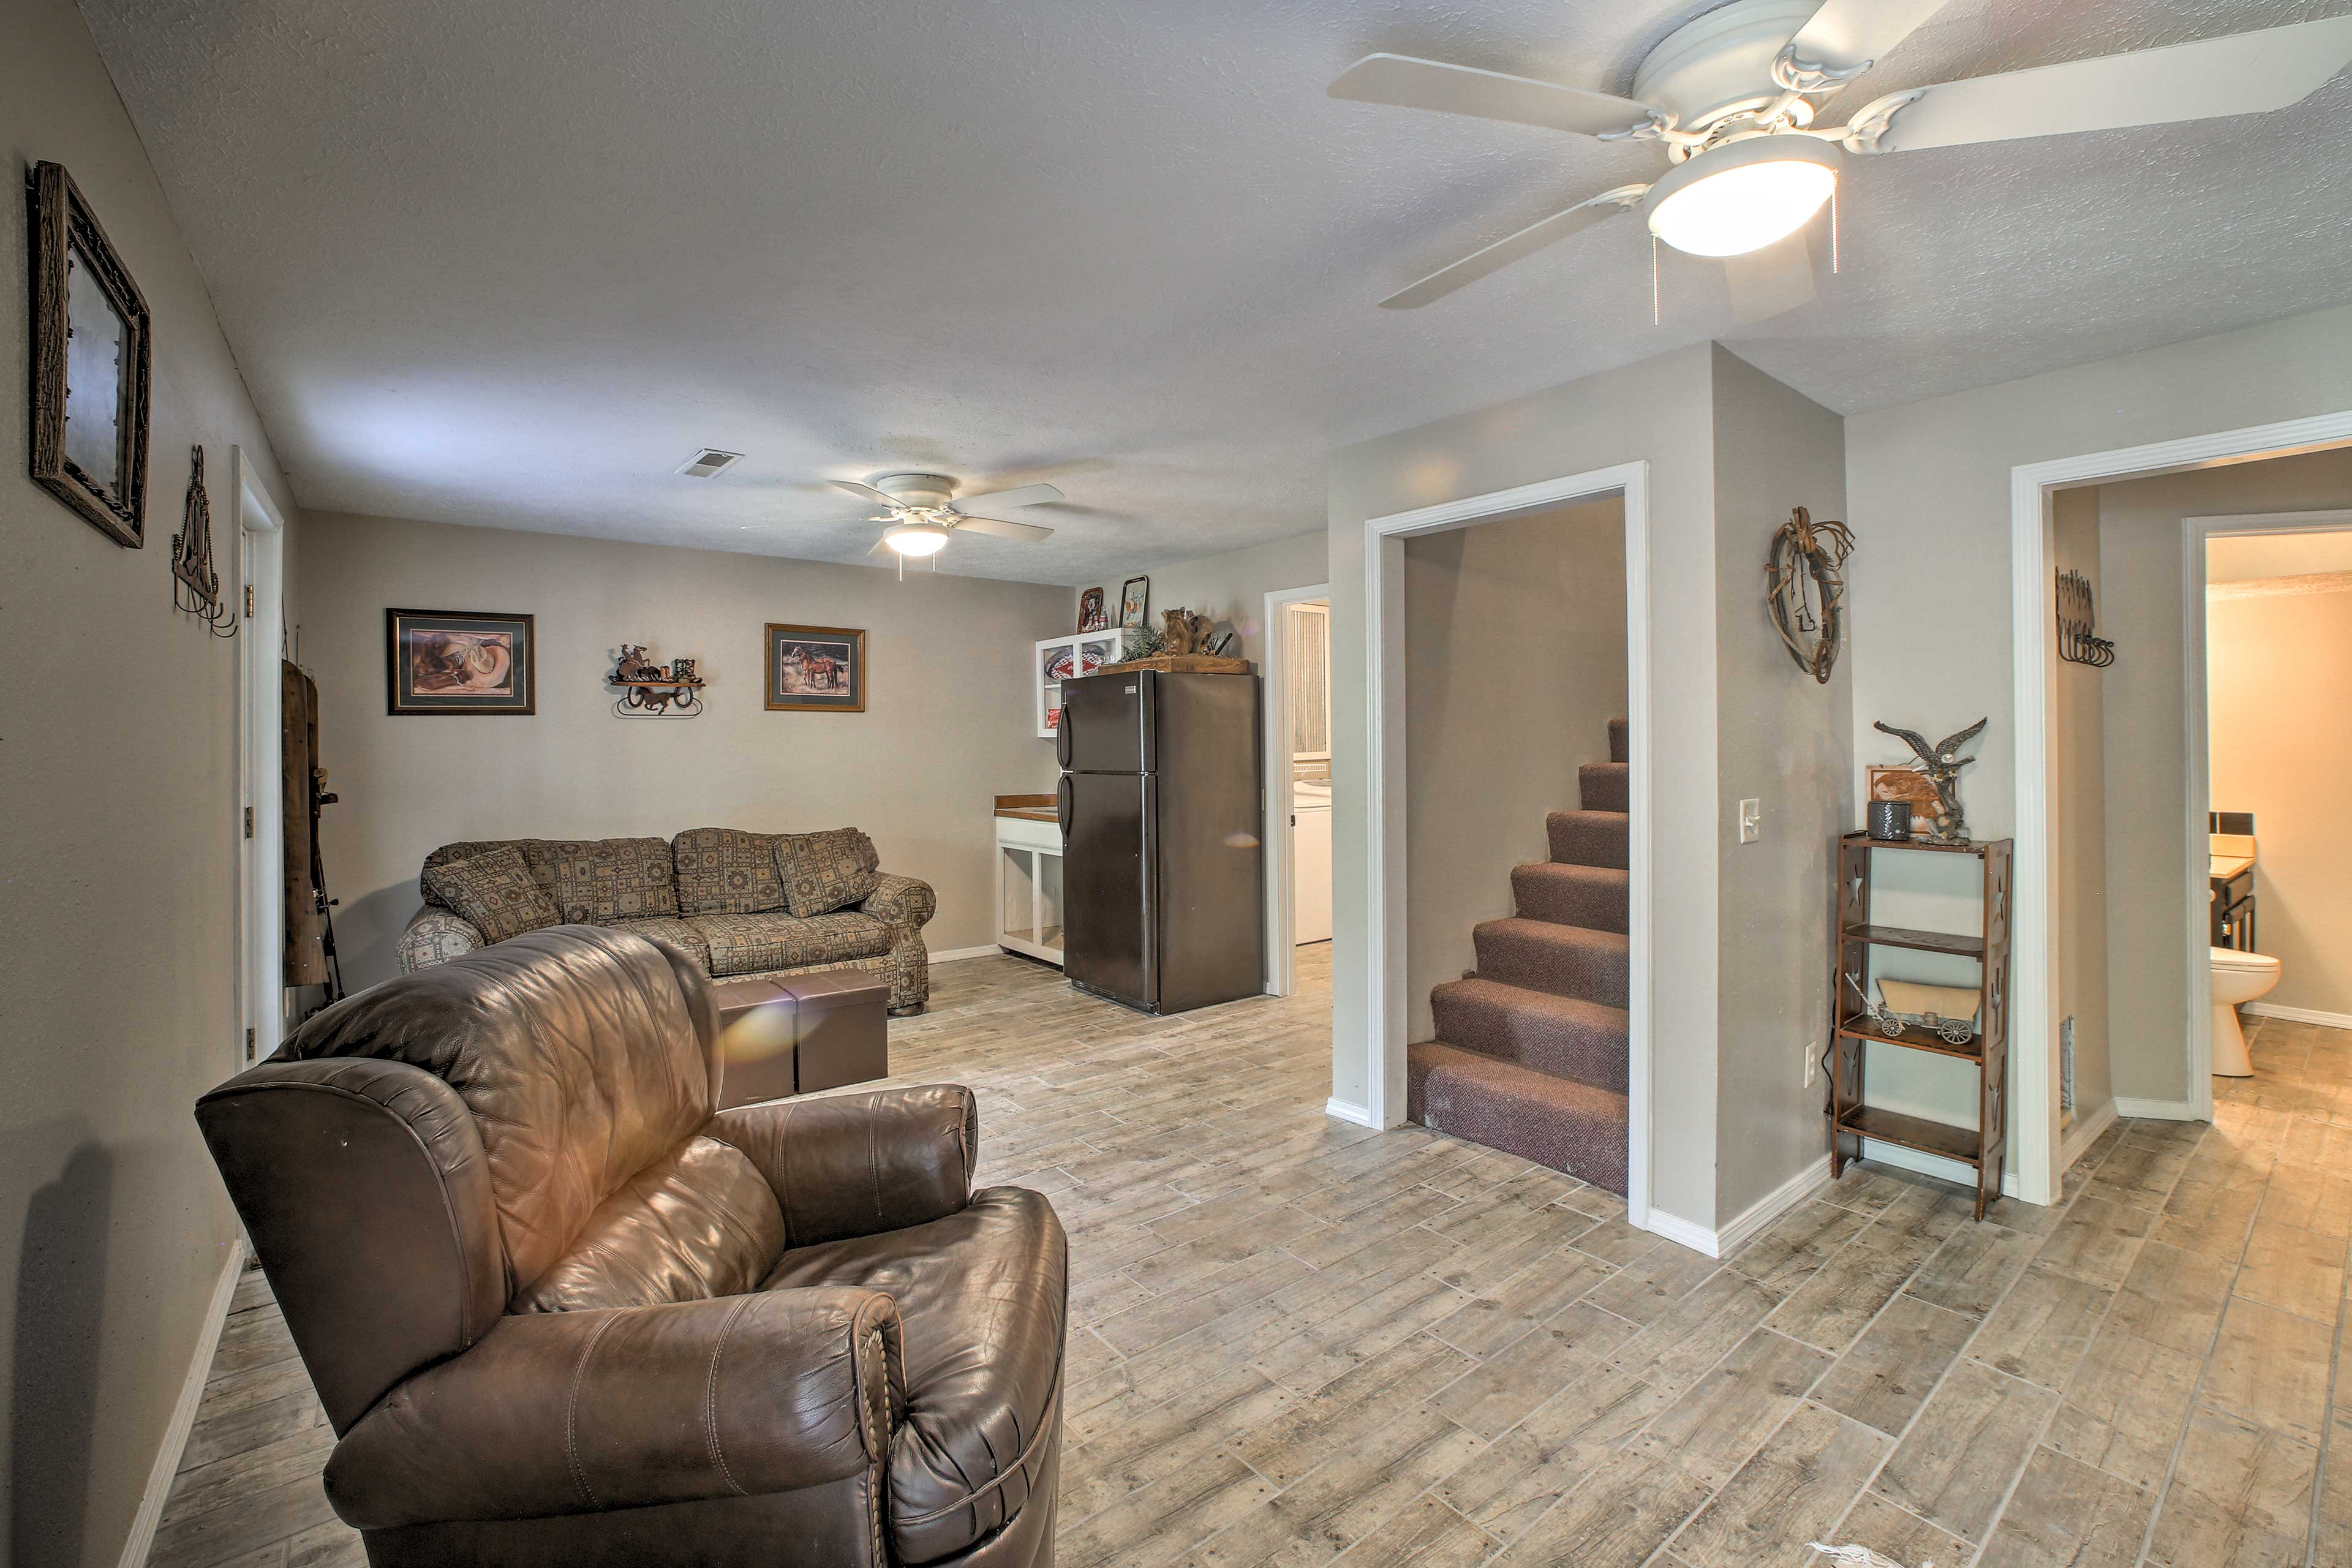 An additional living area is located downstairs.